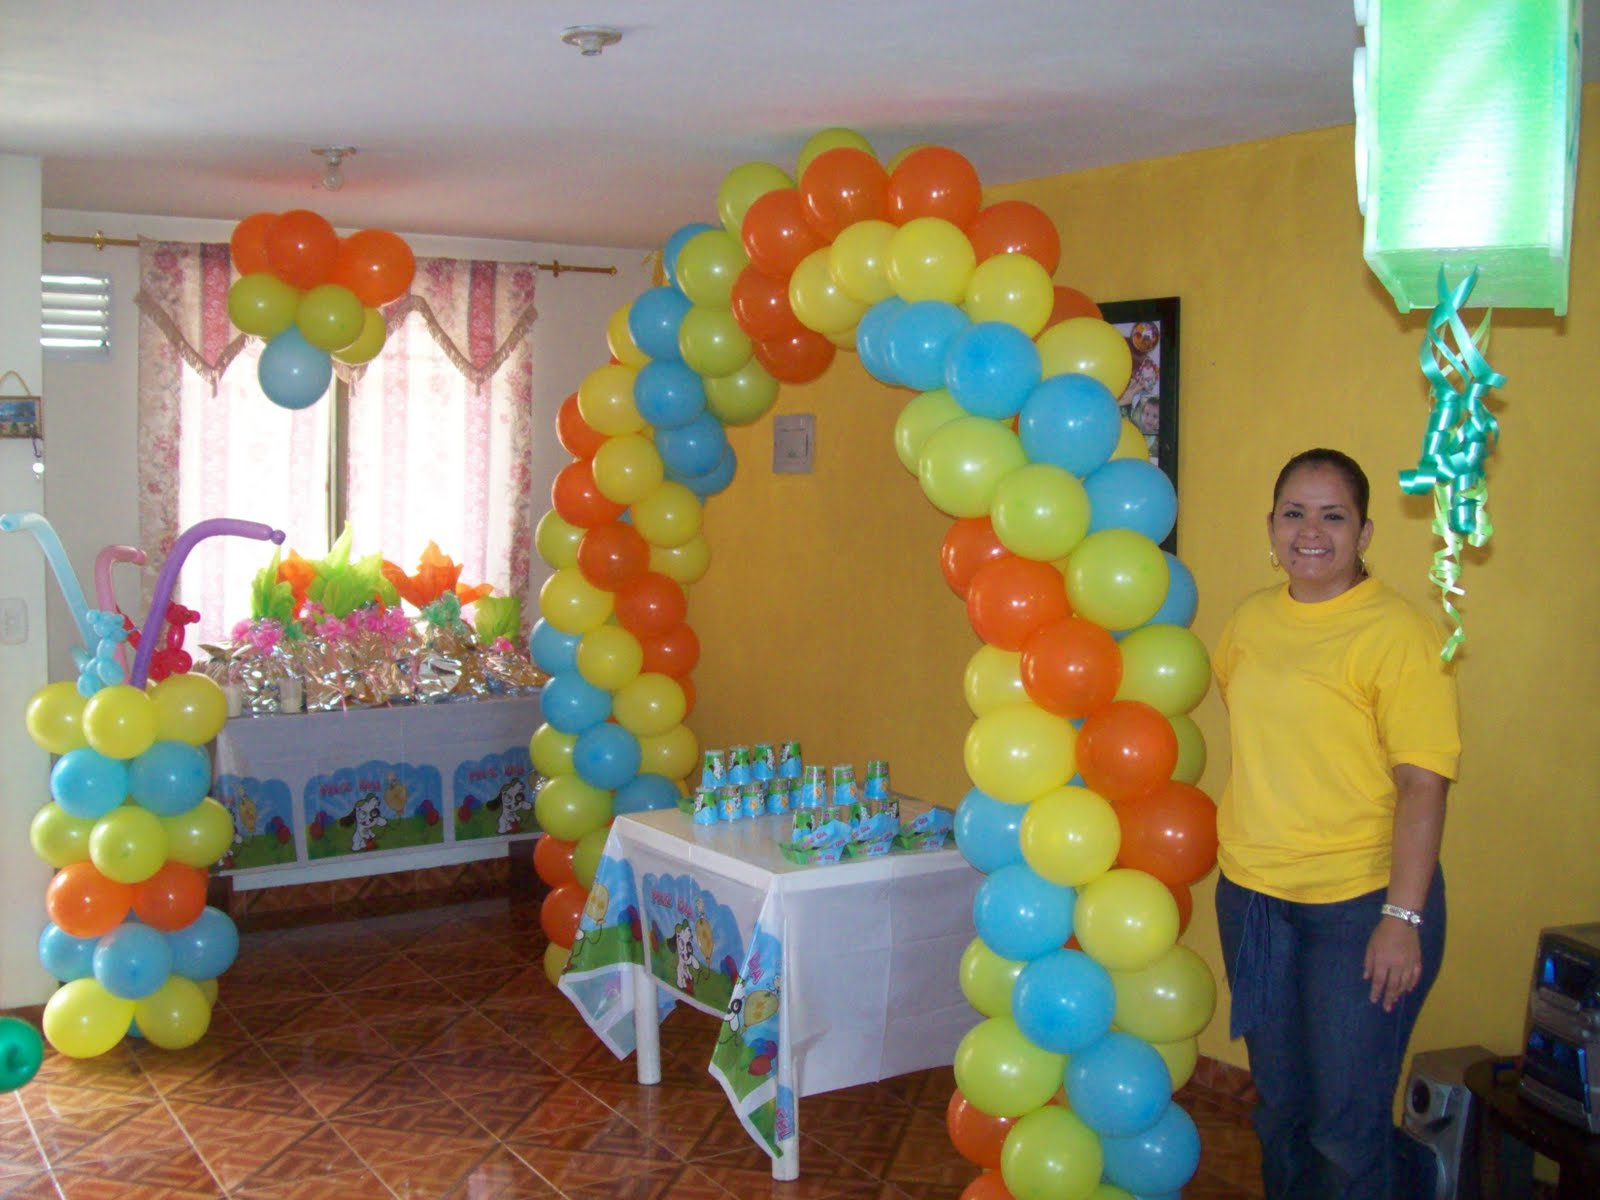 Decoraciones con globos para fiestas infantiles imagenes for Decoracion pared infantil